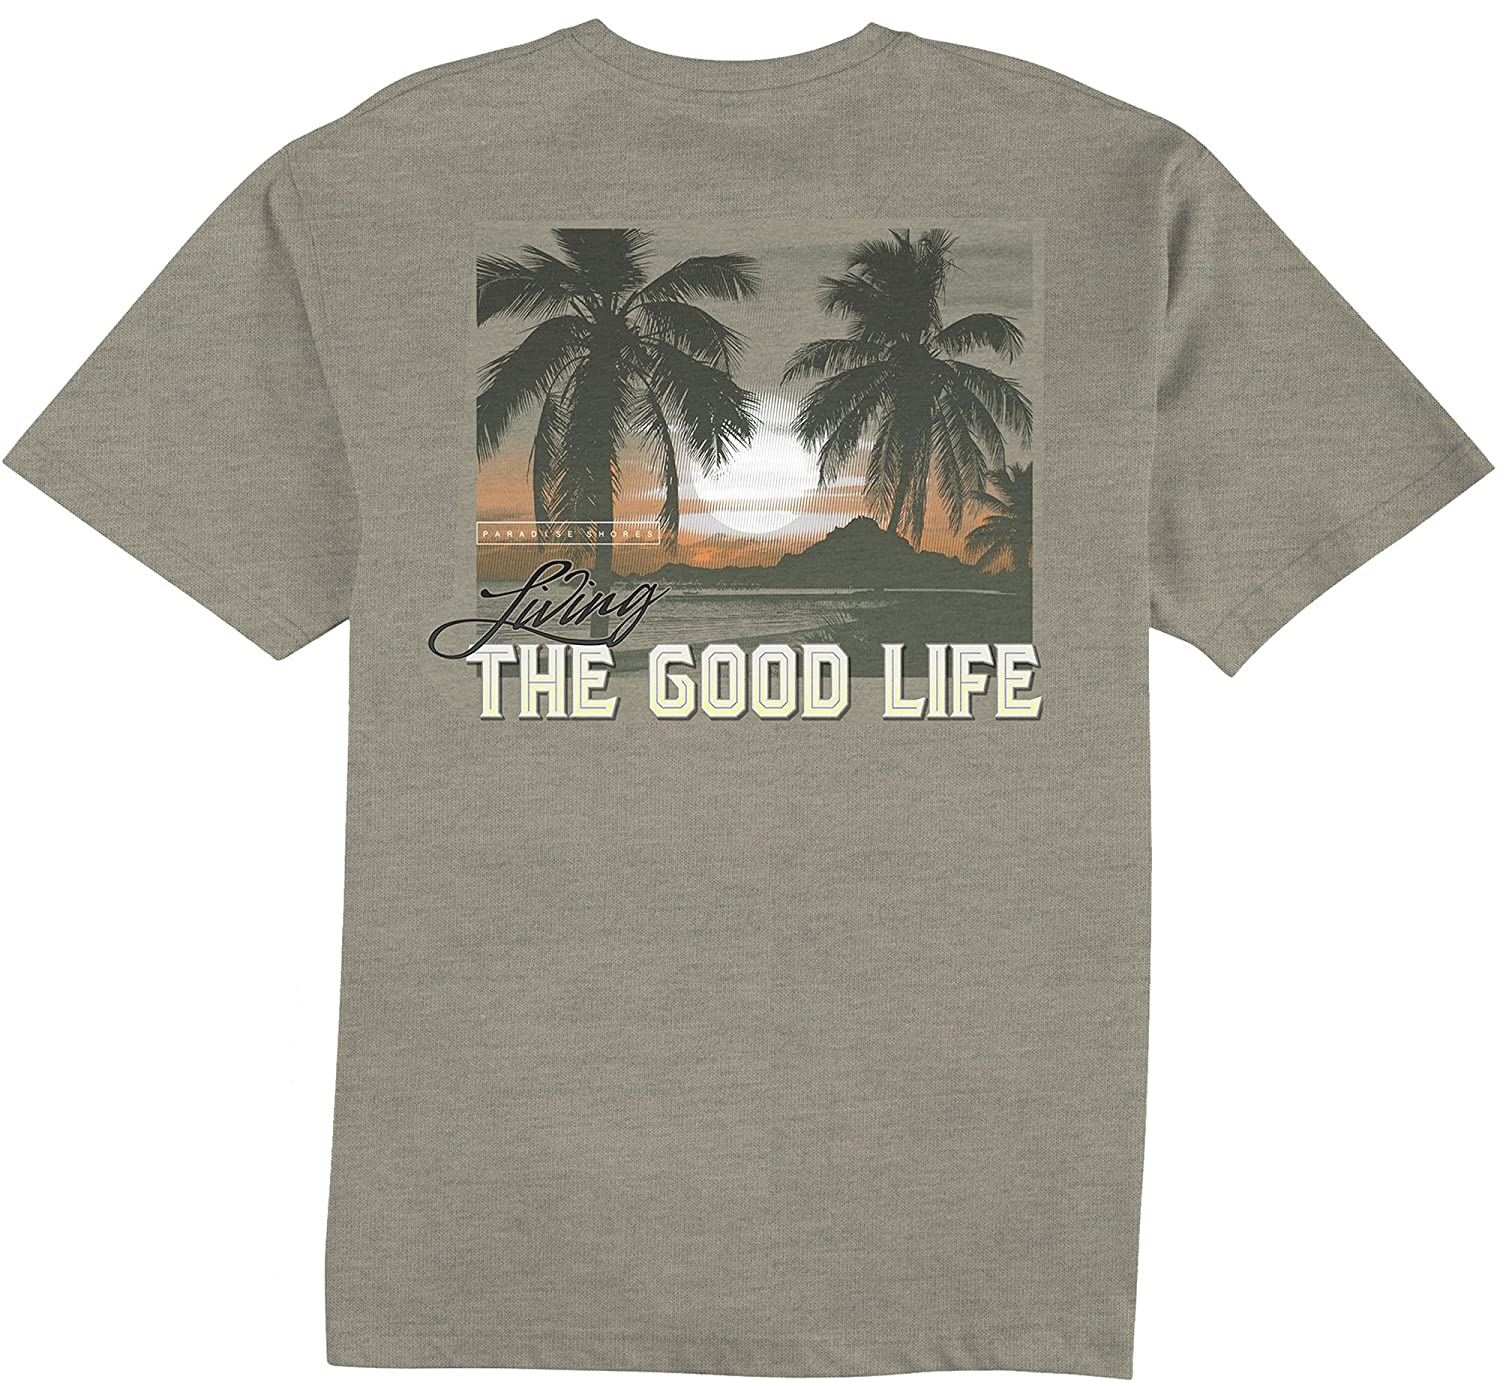 Paradise shores mens living the good life t shirt xx large for Successful t shirt brands